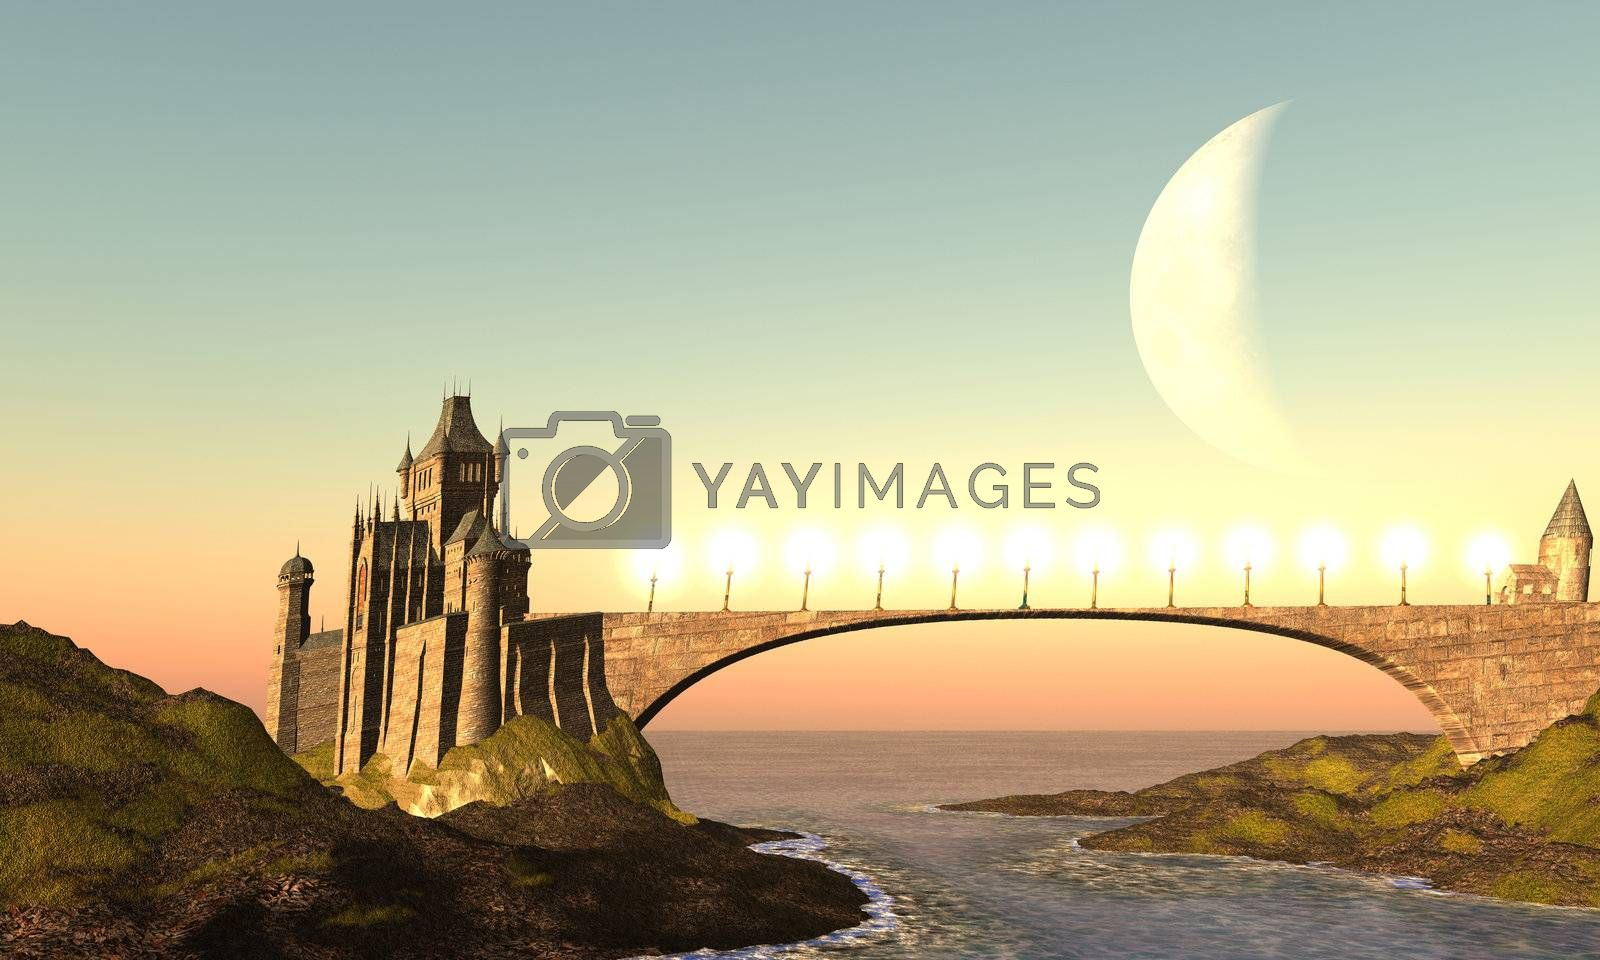 A castle and its bridge are bathed in the colors of the sunset.